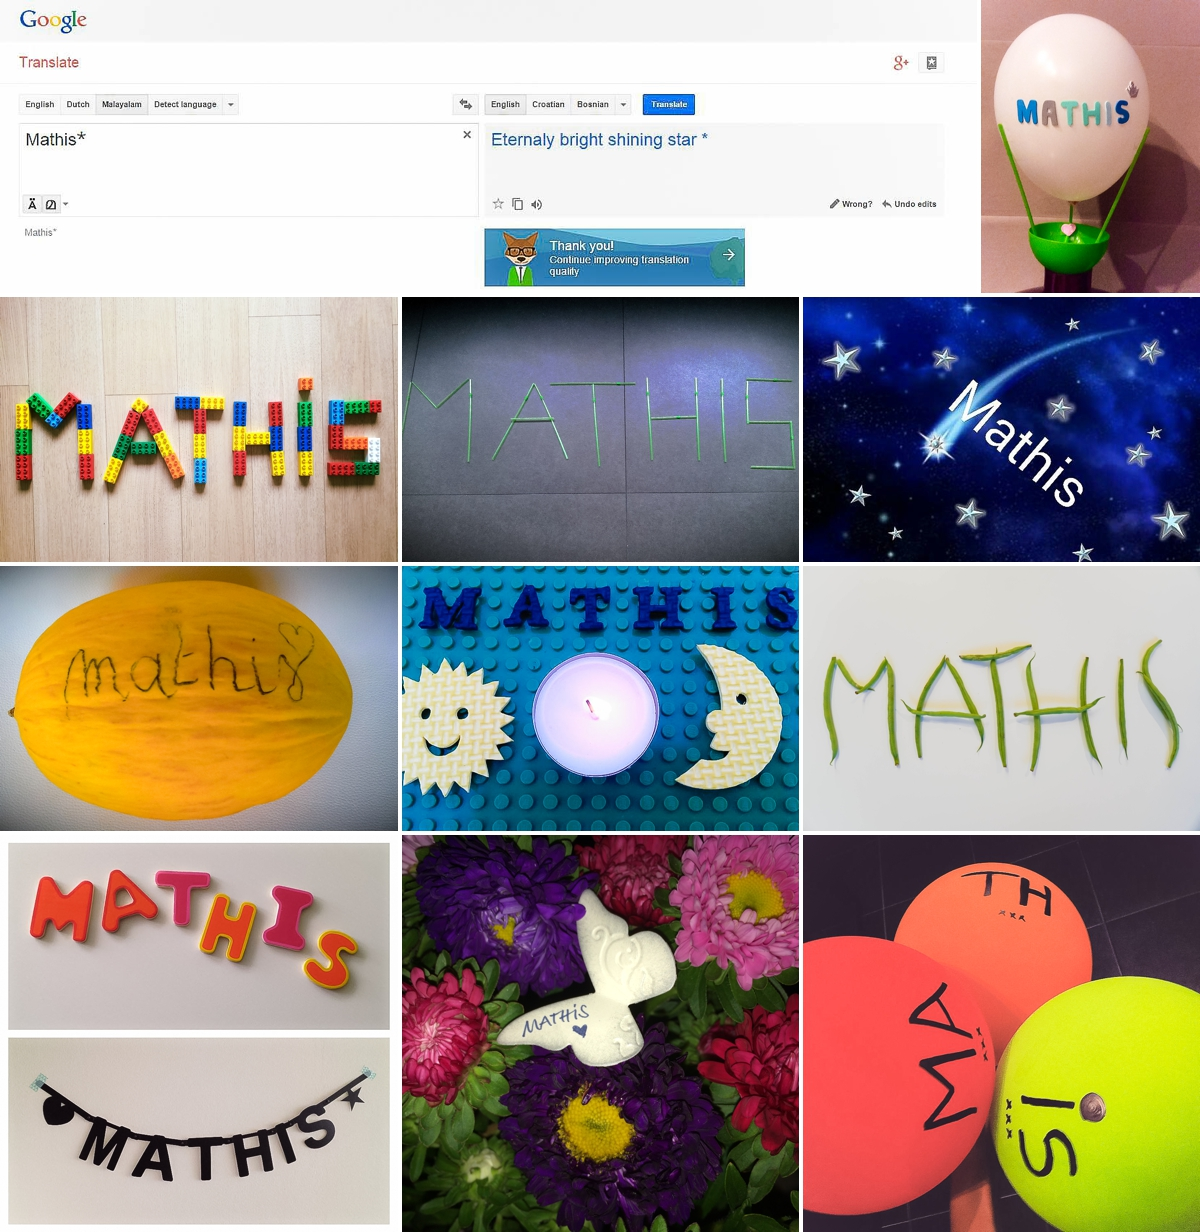 2015 Naamcollage Mathis 4